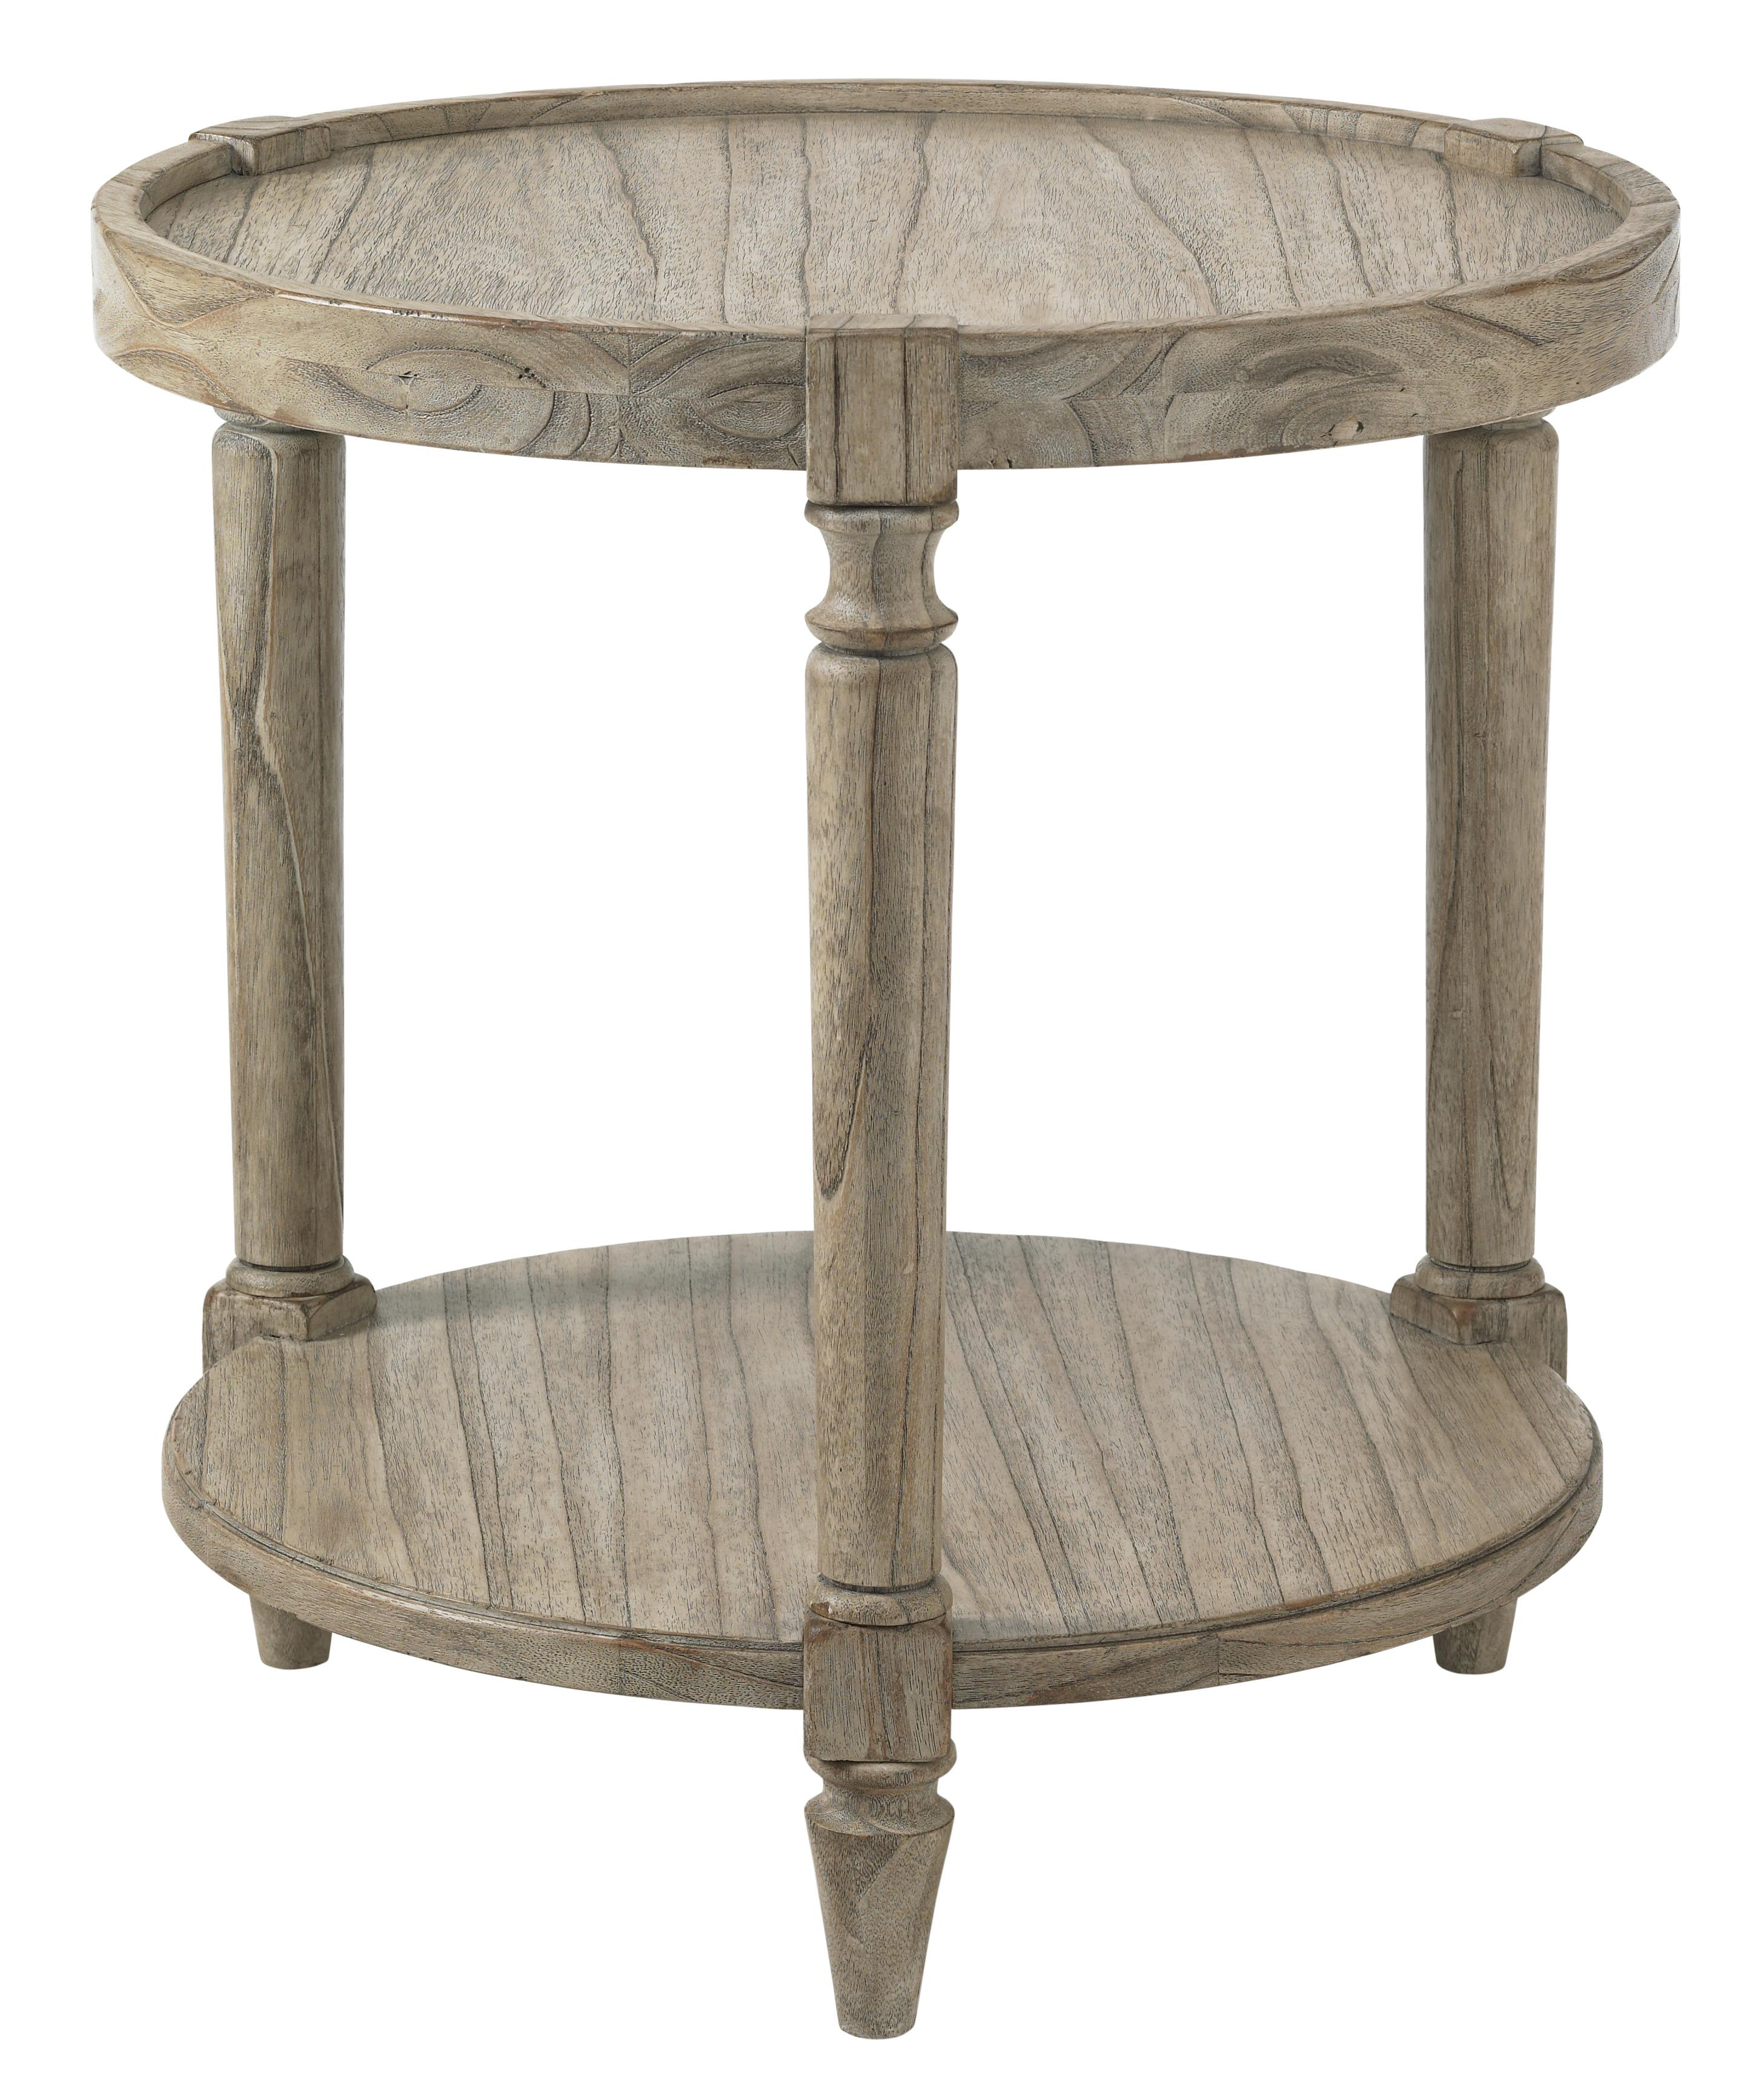 Lexington Twilight Bay 352 950 Phoebe Lamp Table Baer 39 S Furniture End Tables